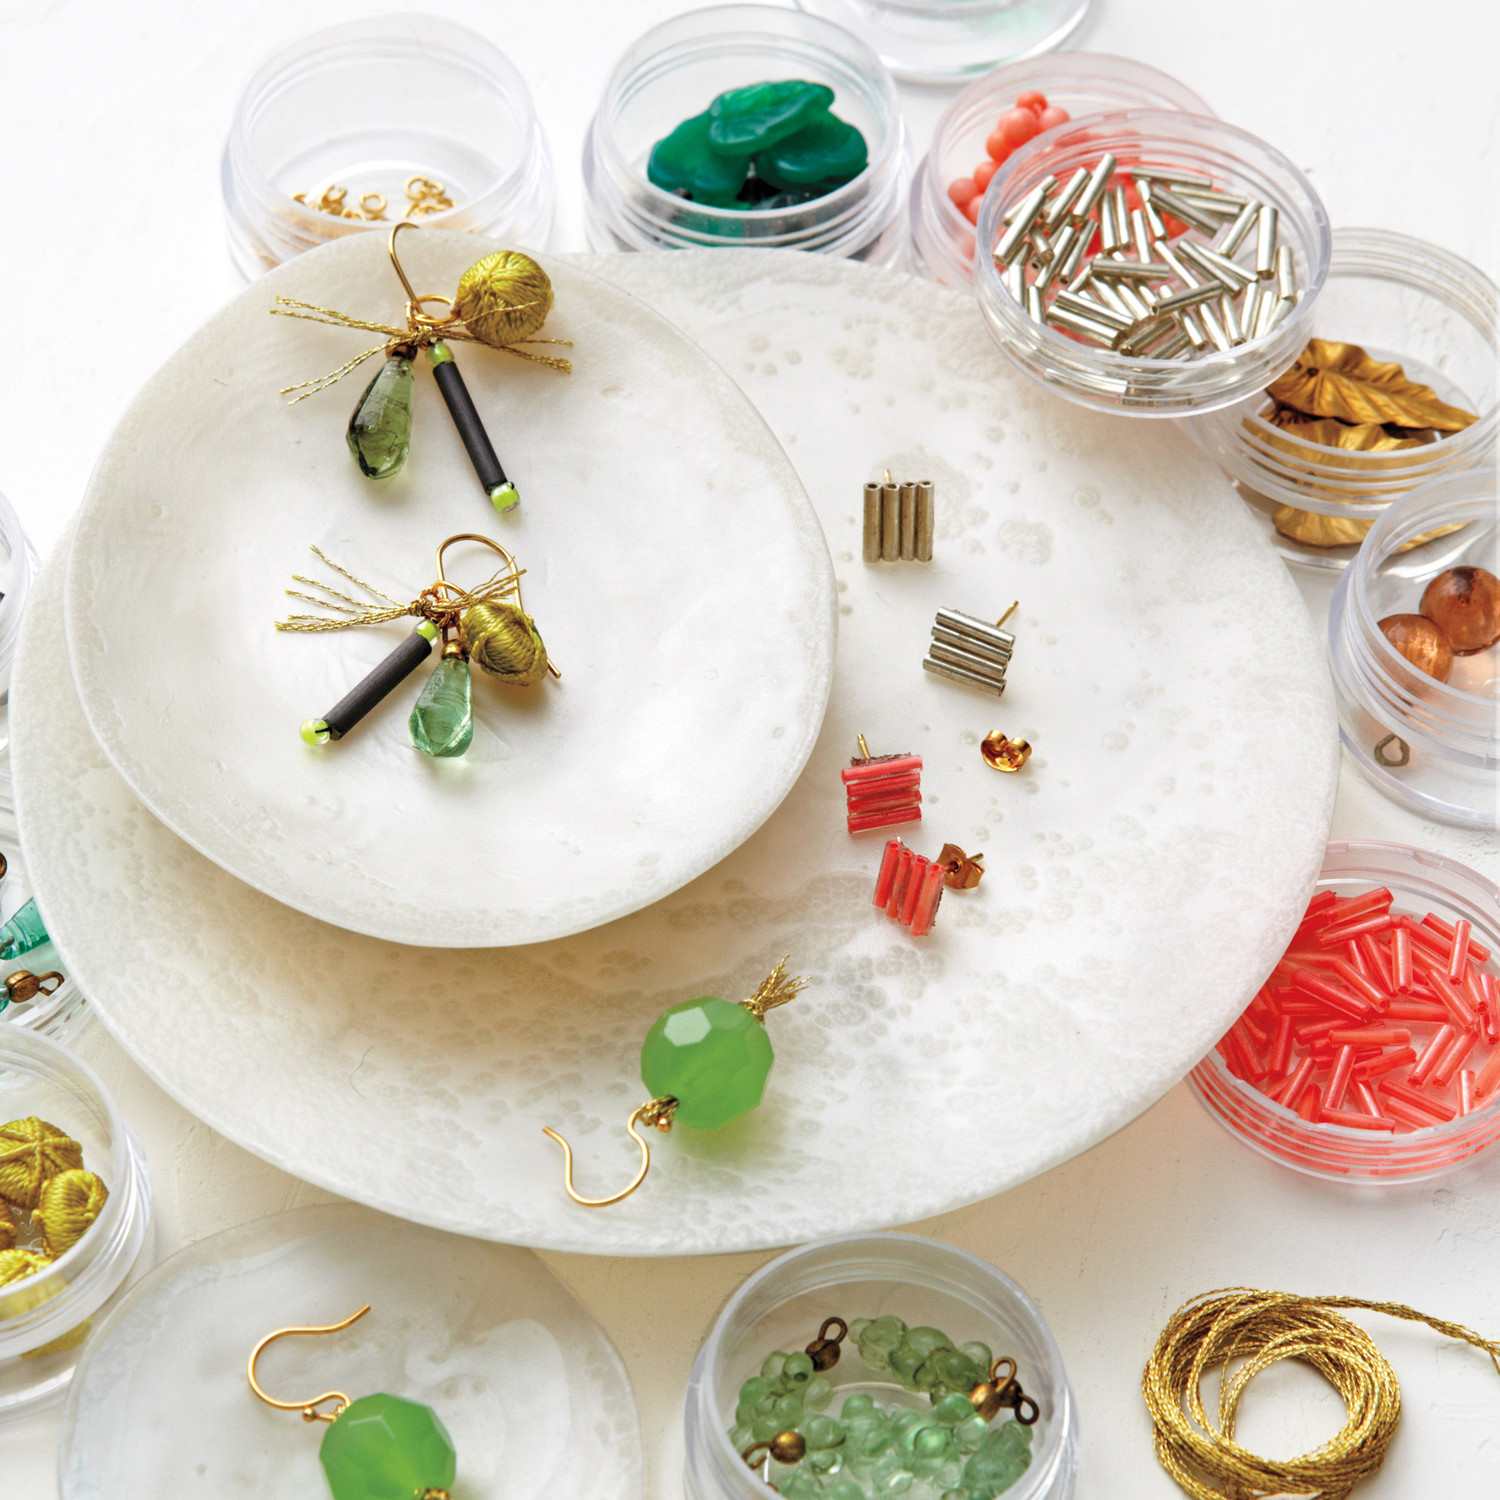 13 Handmade Earrings You Can Make Yourself | Martha Stewart